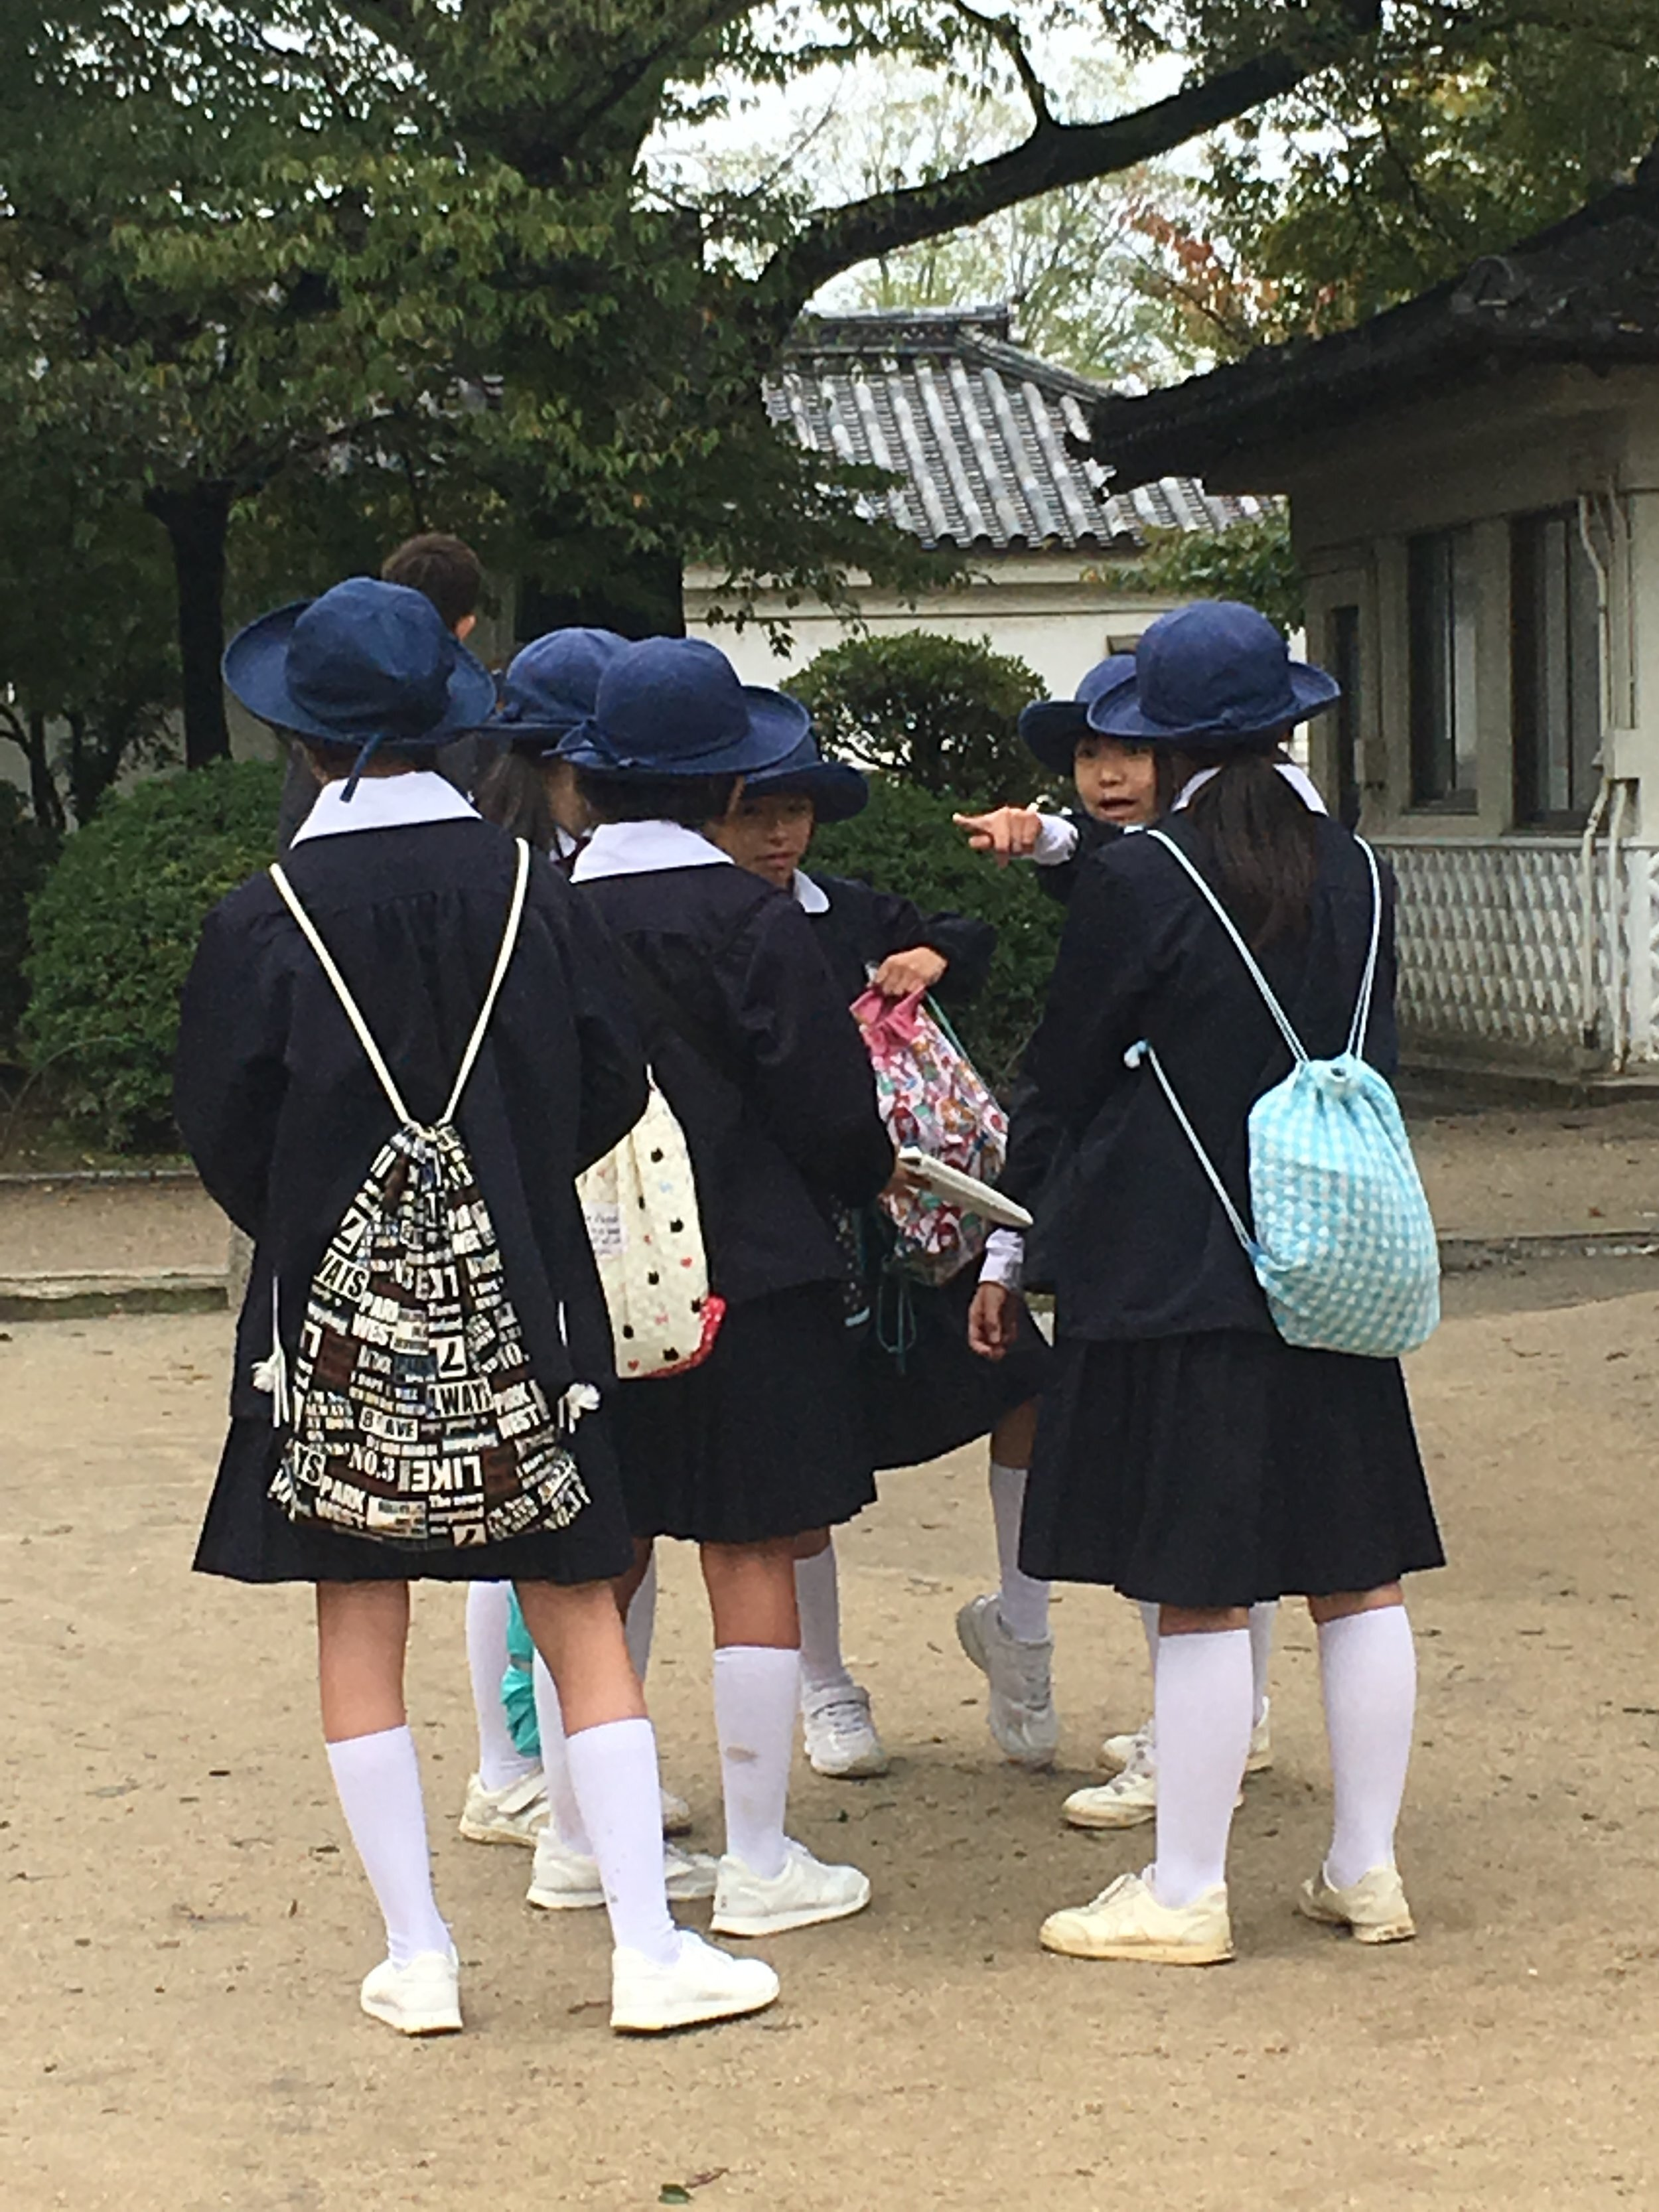 Girls from an excursion school.